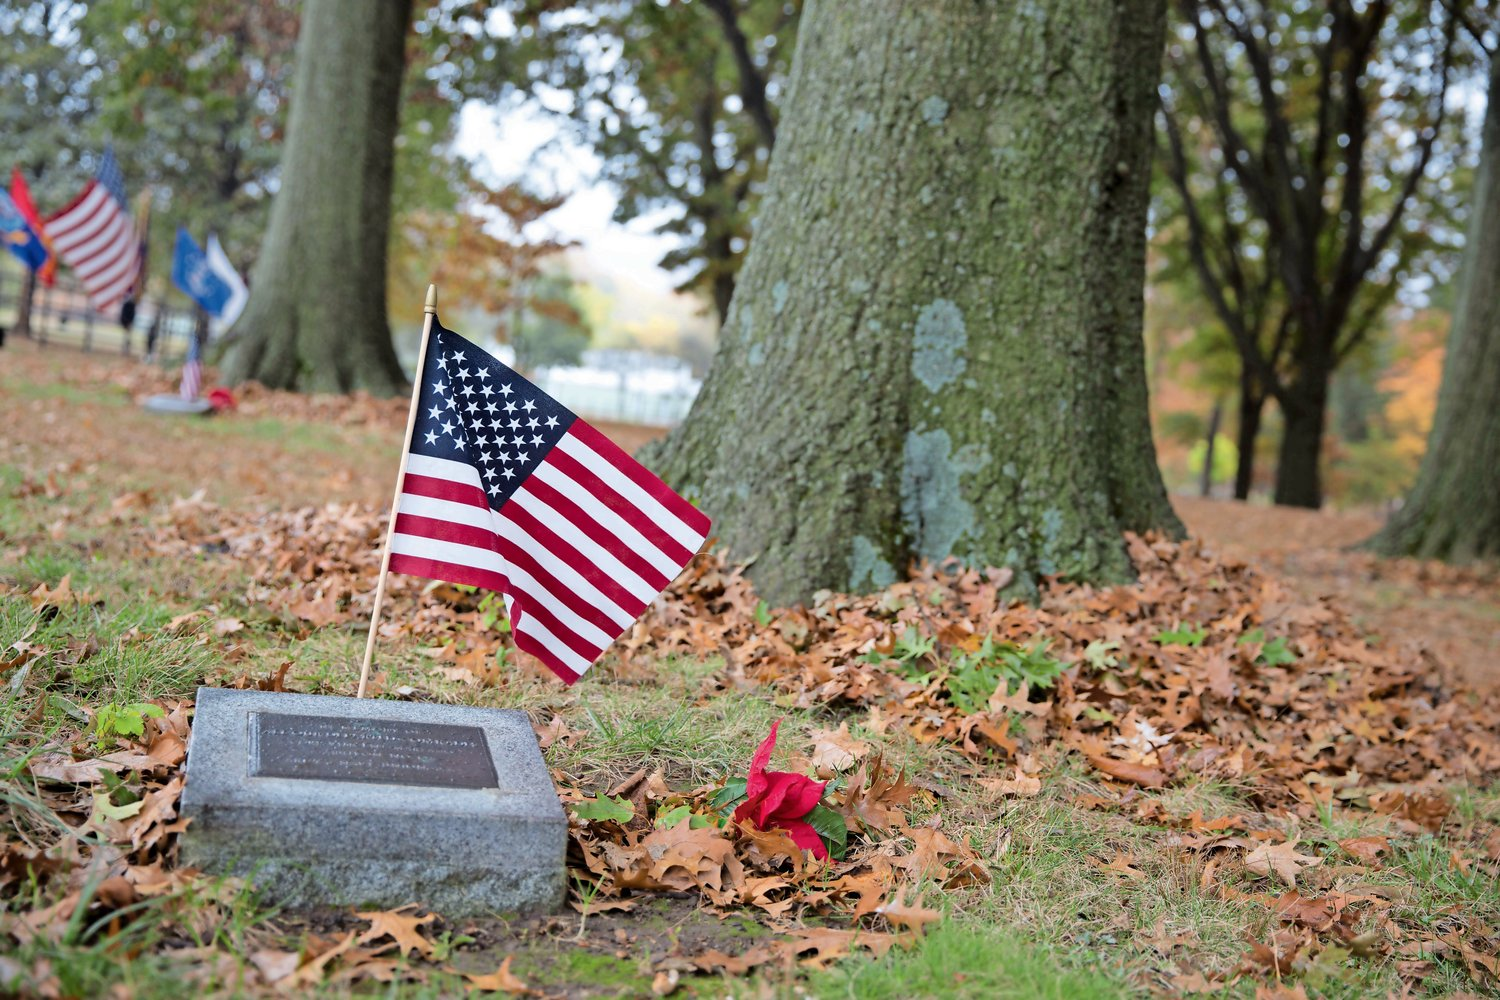 A World War II memorial in Memorial Grove, decorated by Herb Barrett, honors the memory of fallen soldiers.